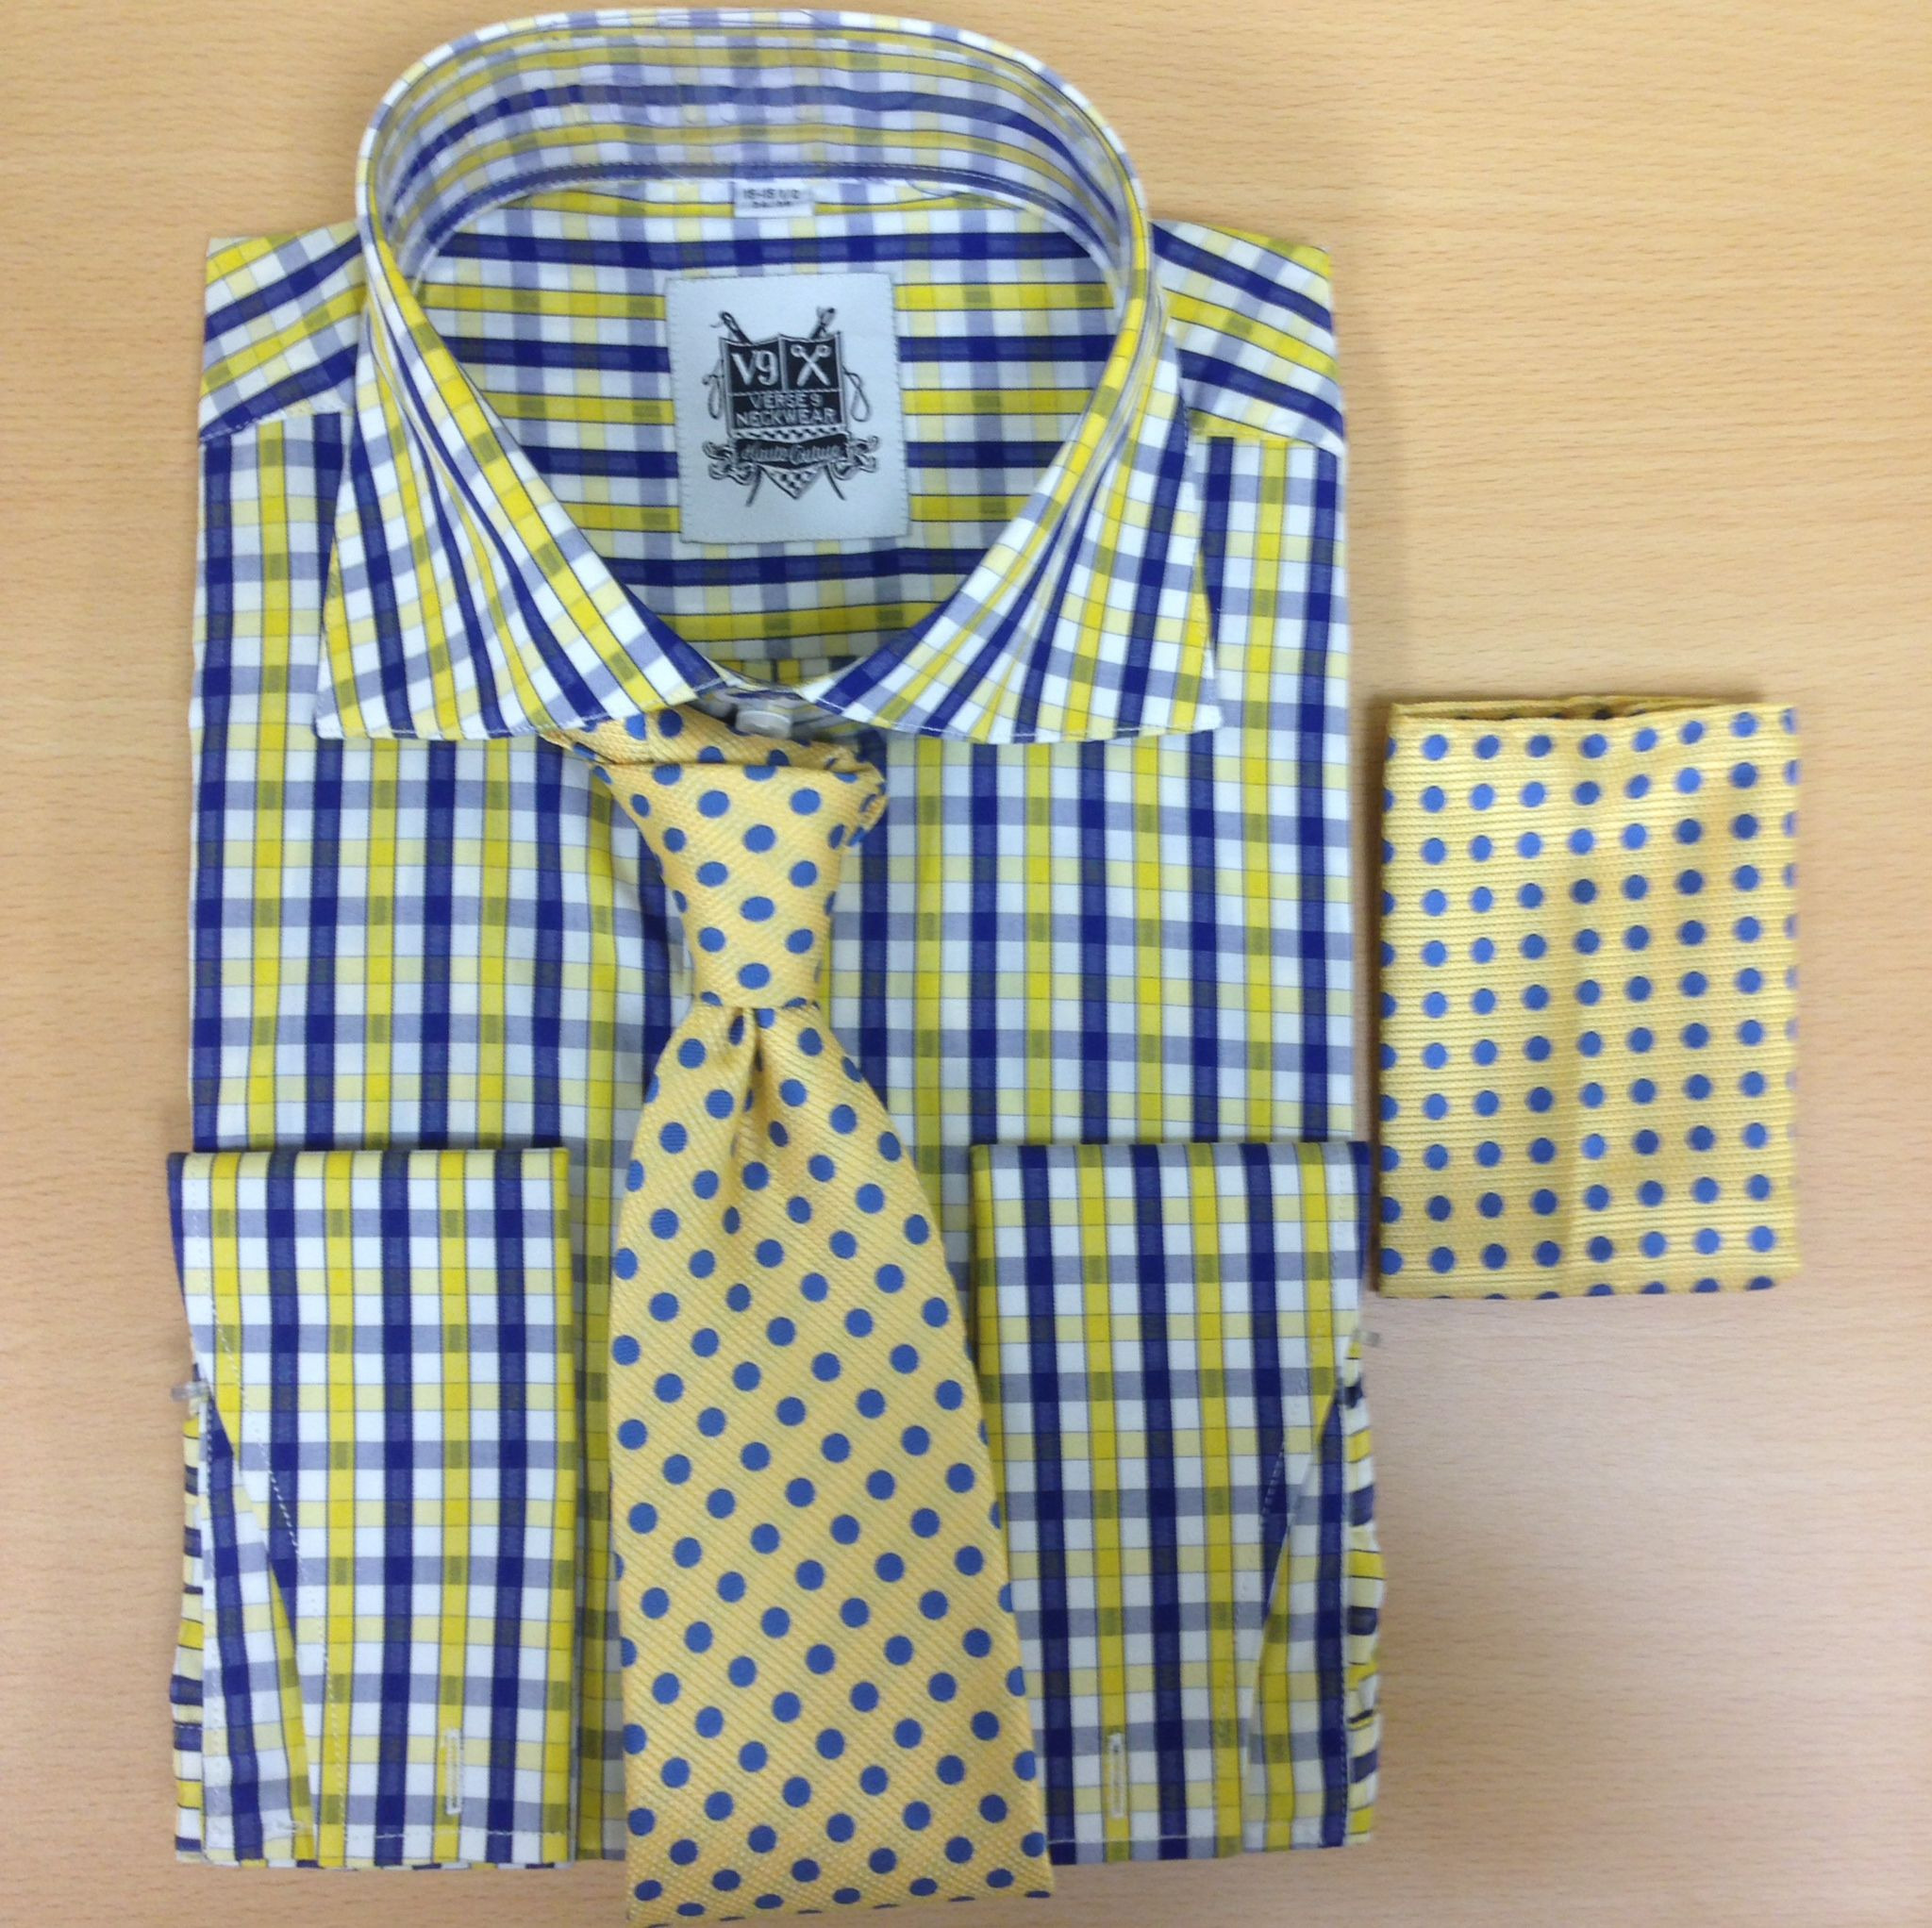 With Men's Dress Shirts Yellow Tie